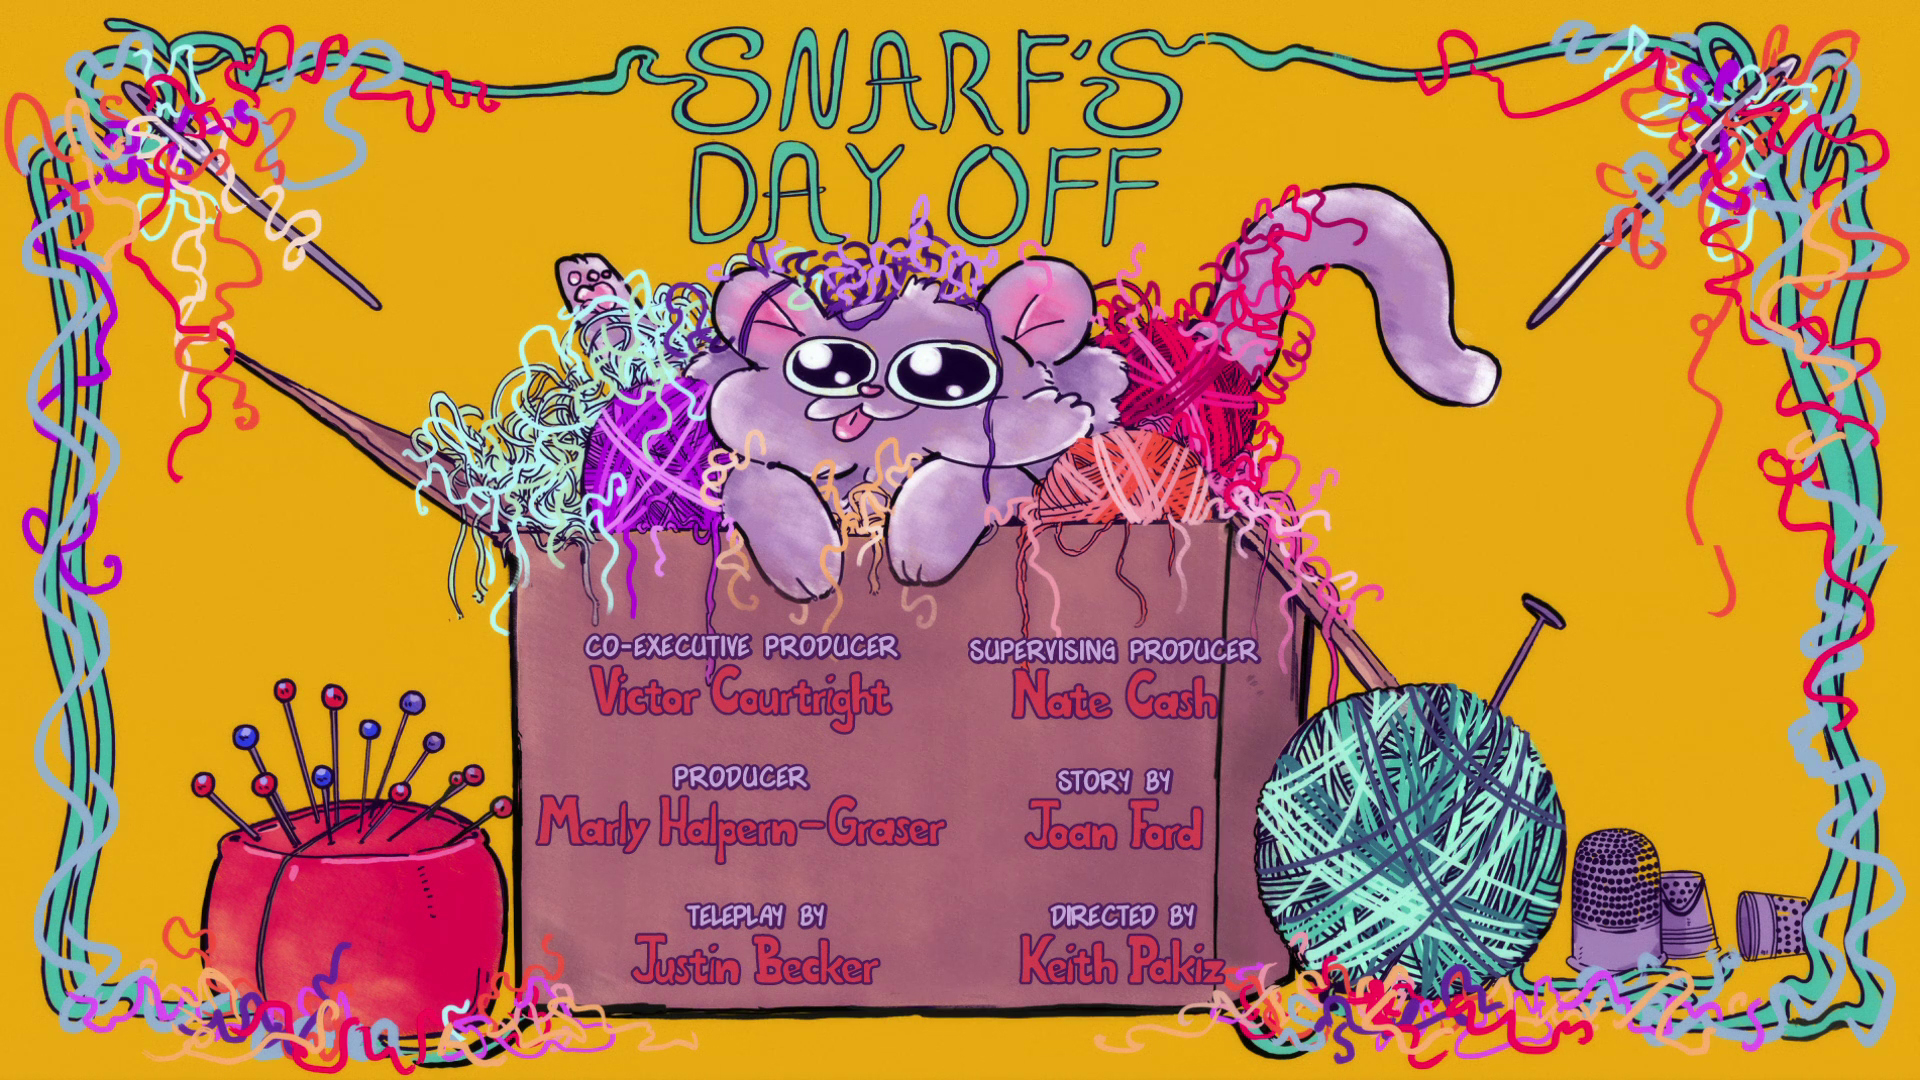 Snarf's Day Off